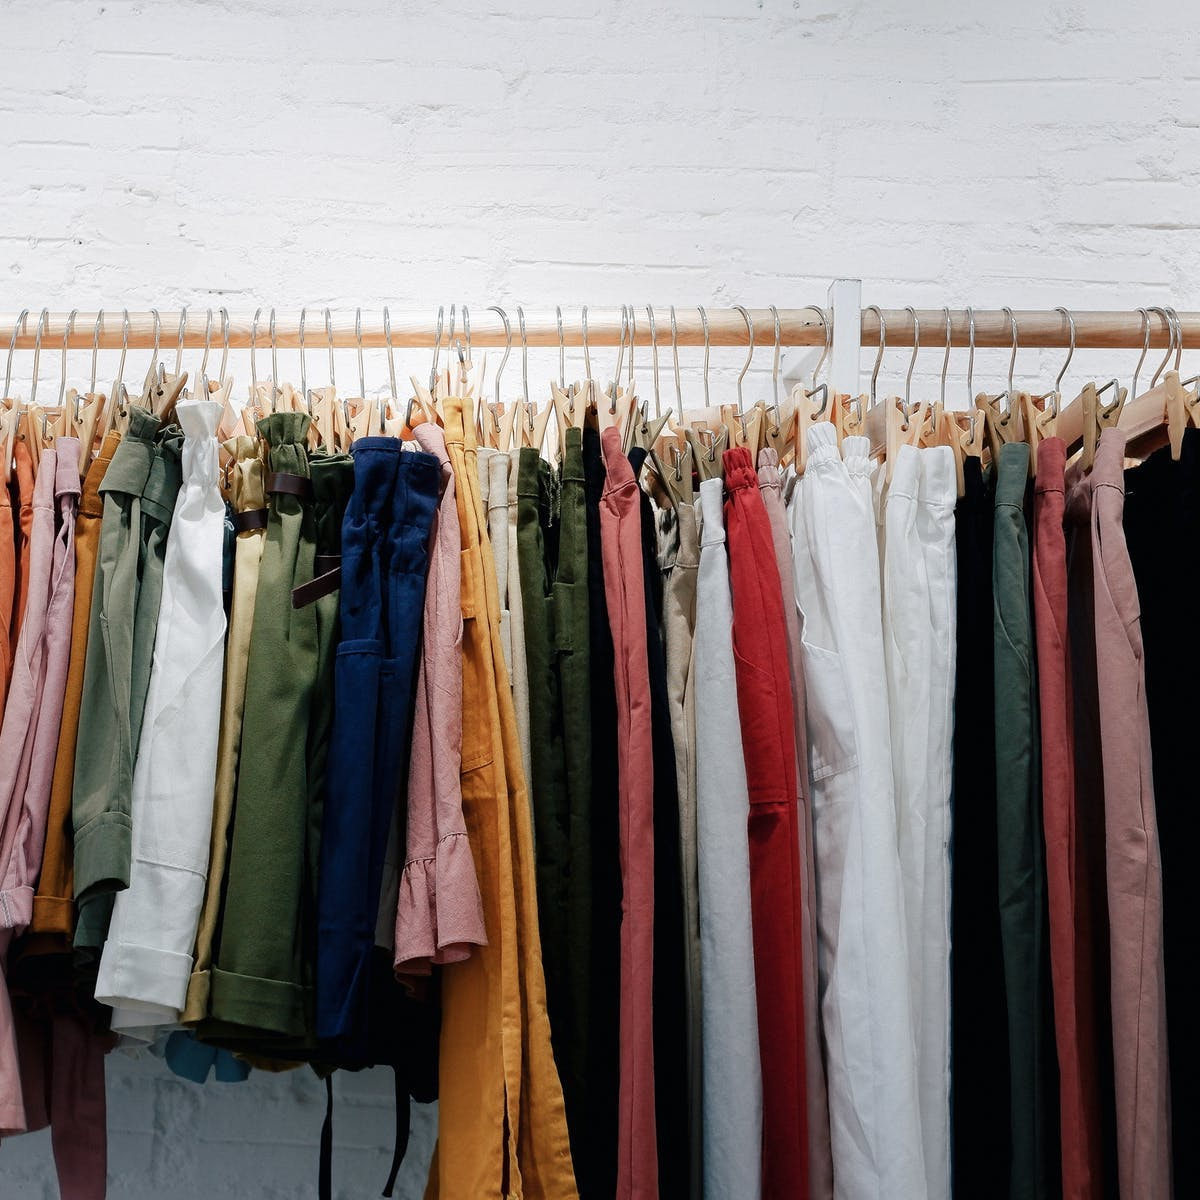 Having timeless and basic pieces can help you build a classic wardrobe. Here are the clothes you should own in your wardrobe to change your lifestyle.